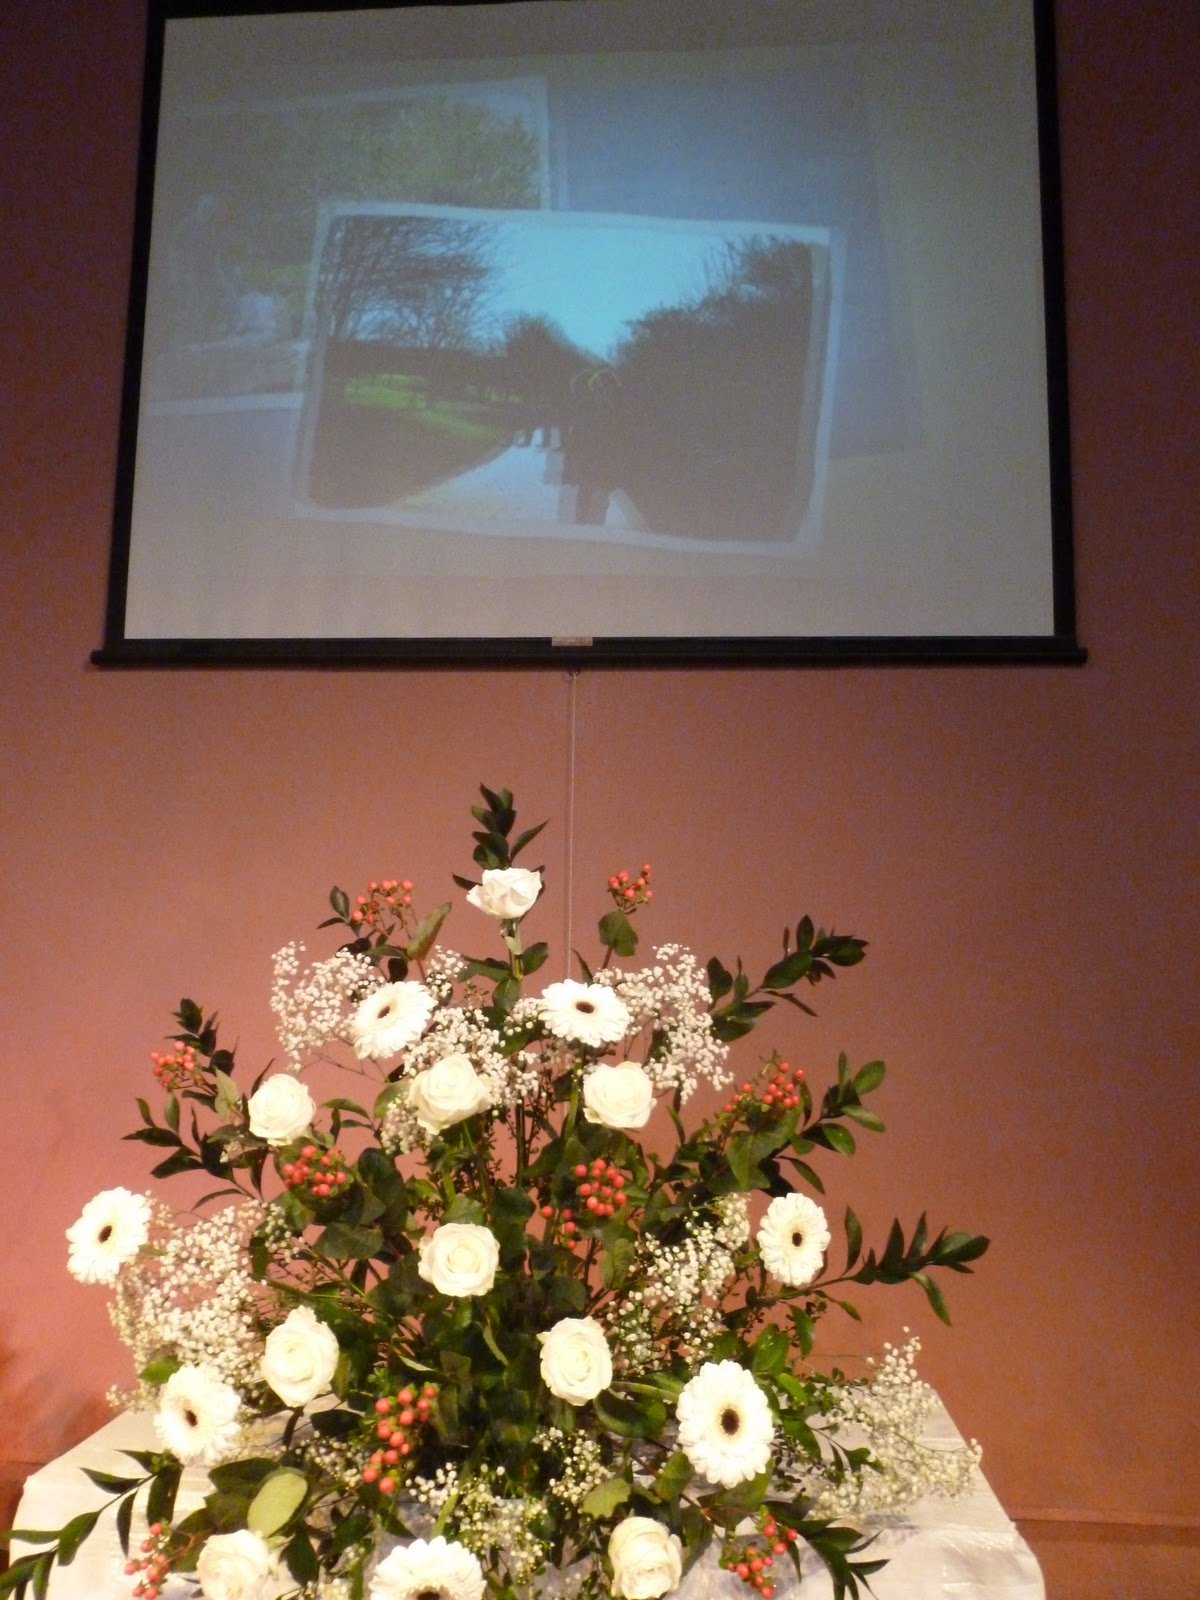 The Other Half (of being the curate's wife): A Wonderful Wedding